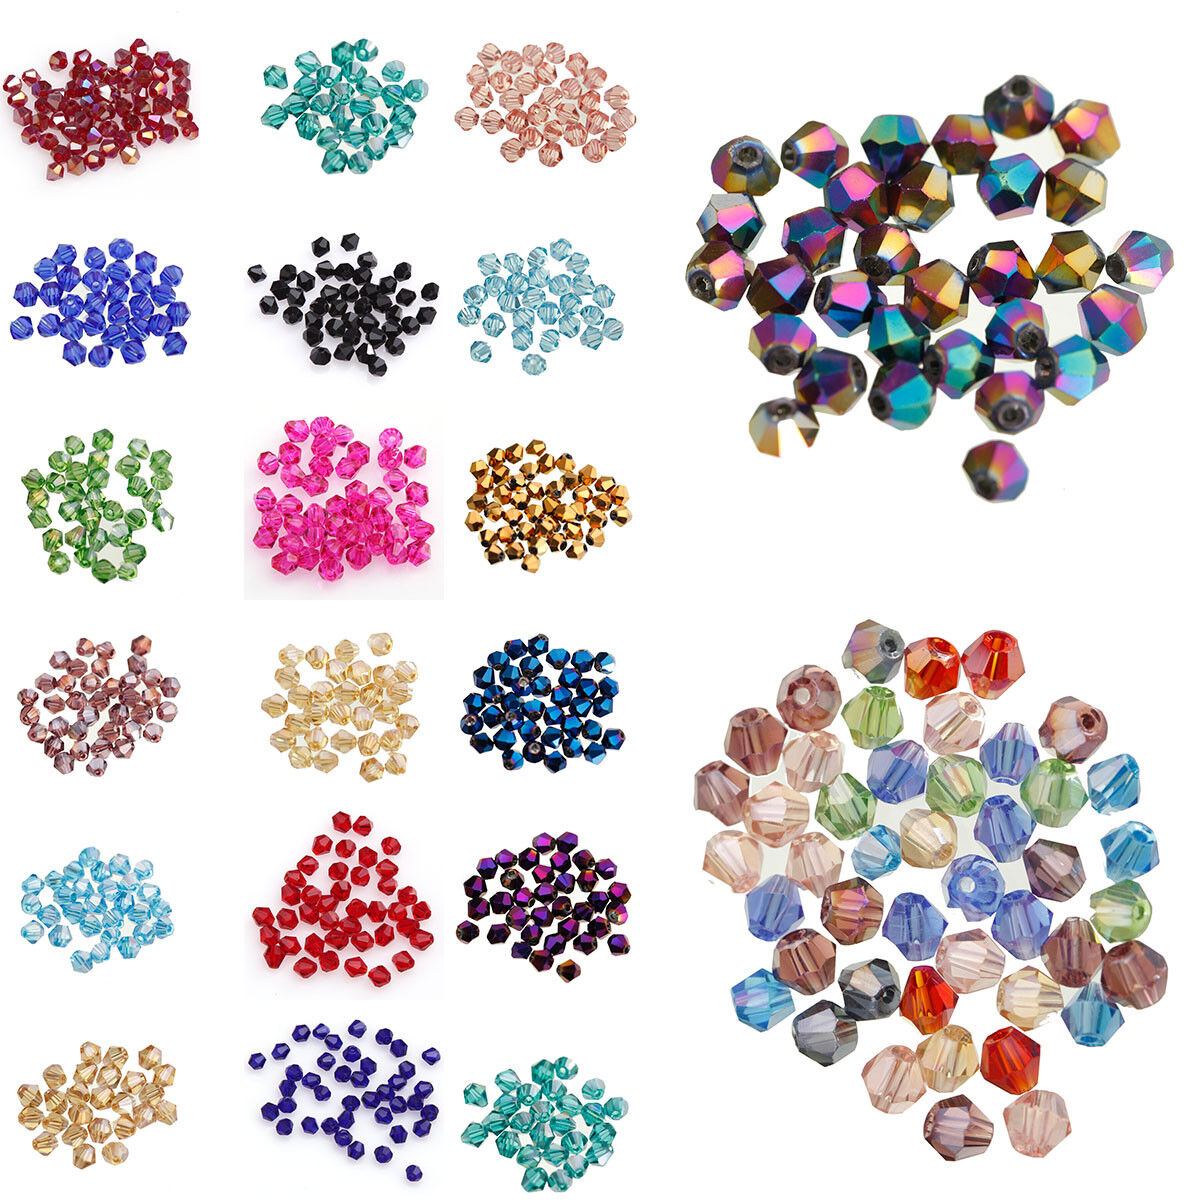 jewelry cube curtain from item bracelets making color arrival on handmade shape cheap in new sharm and loose crystal wholesale suspension square multi pendants beaded accessories beads parts for lot retail